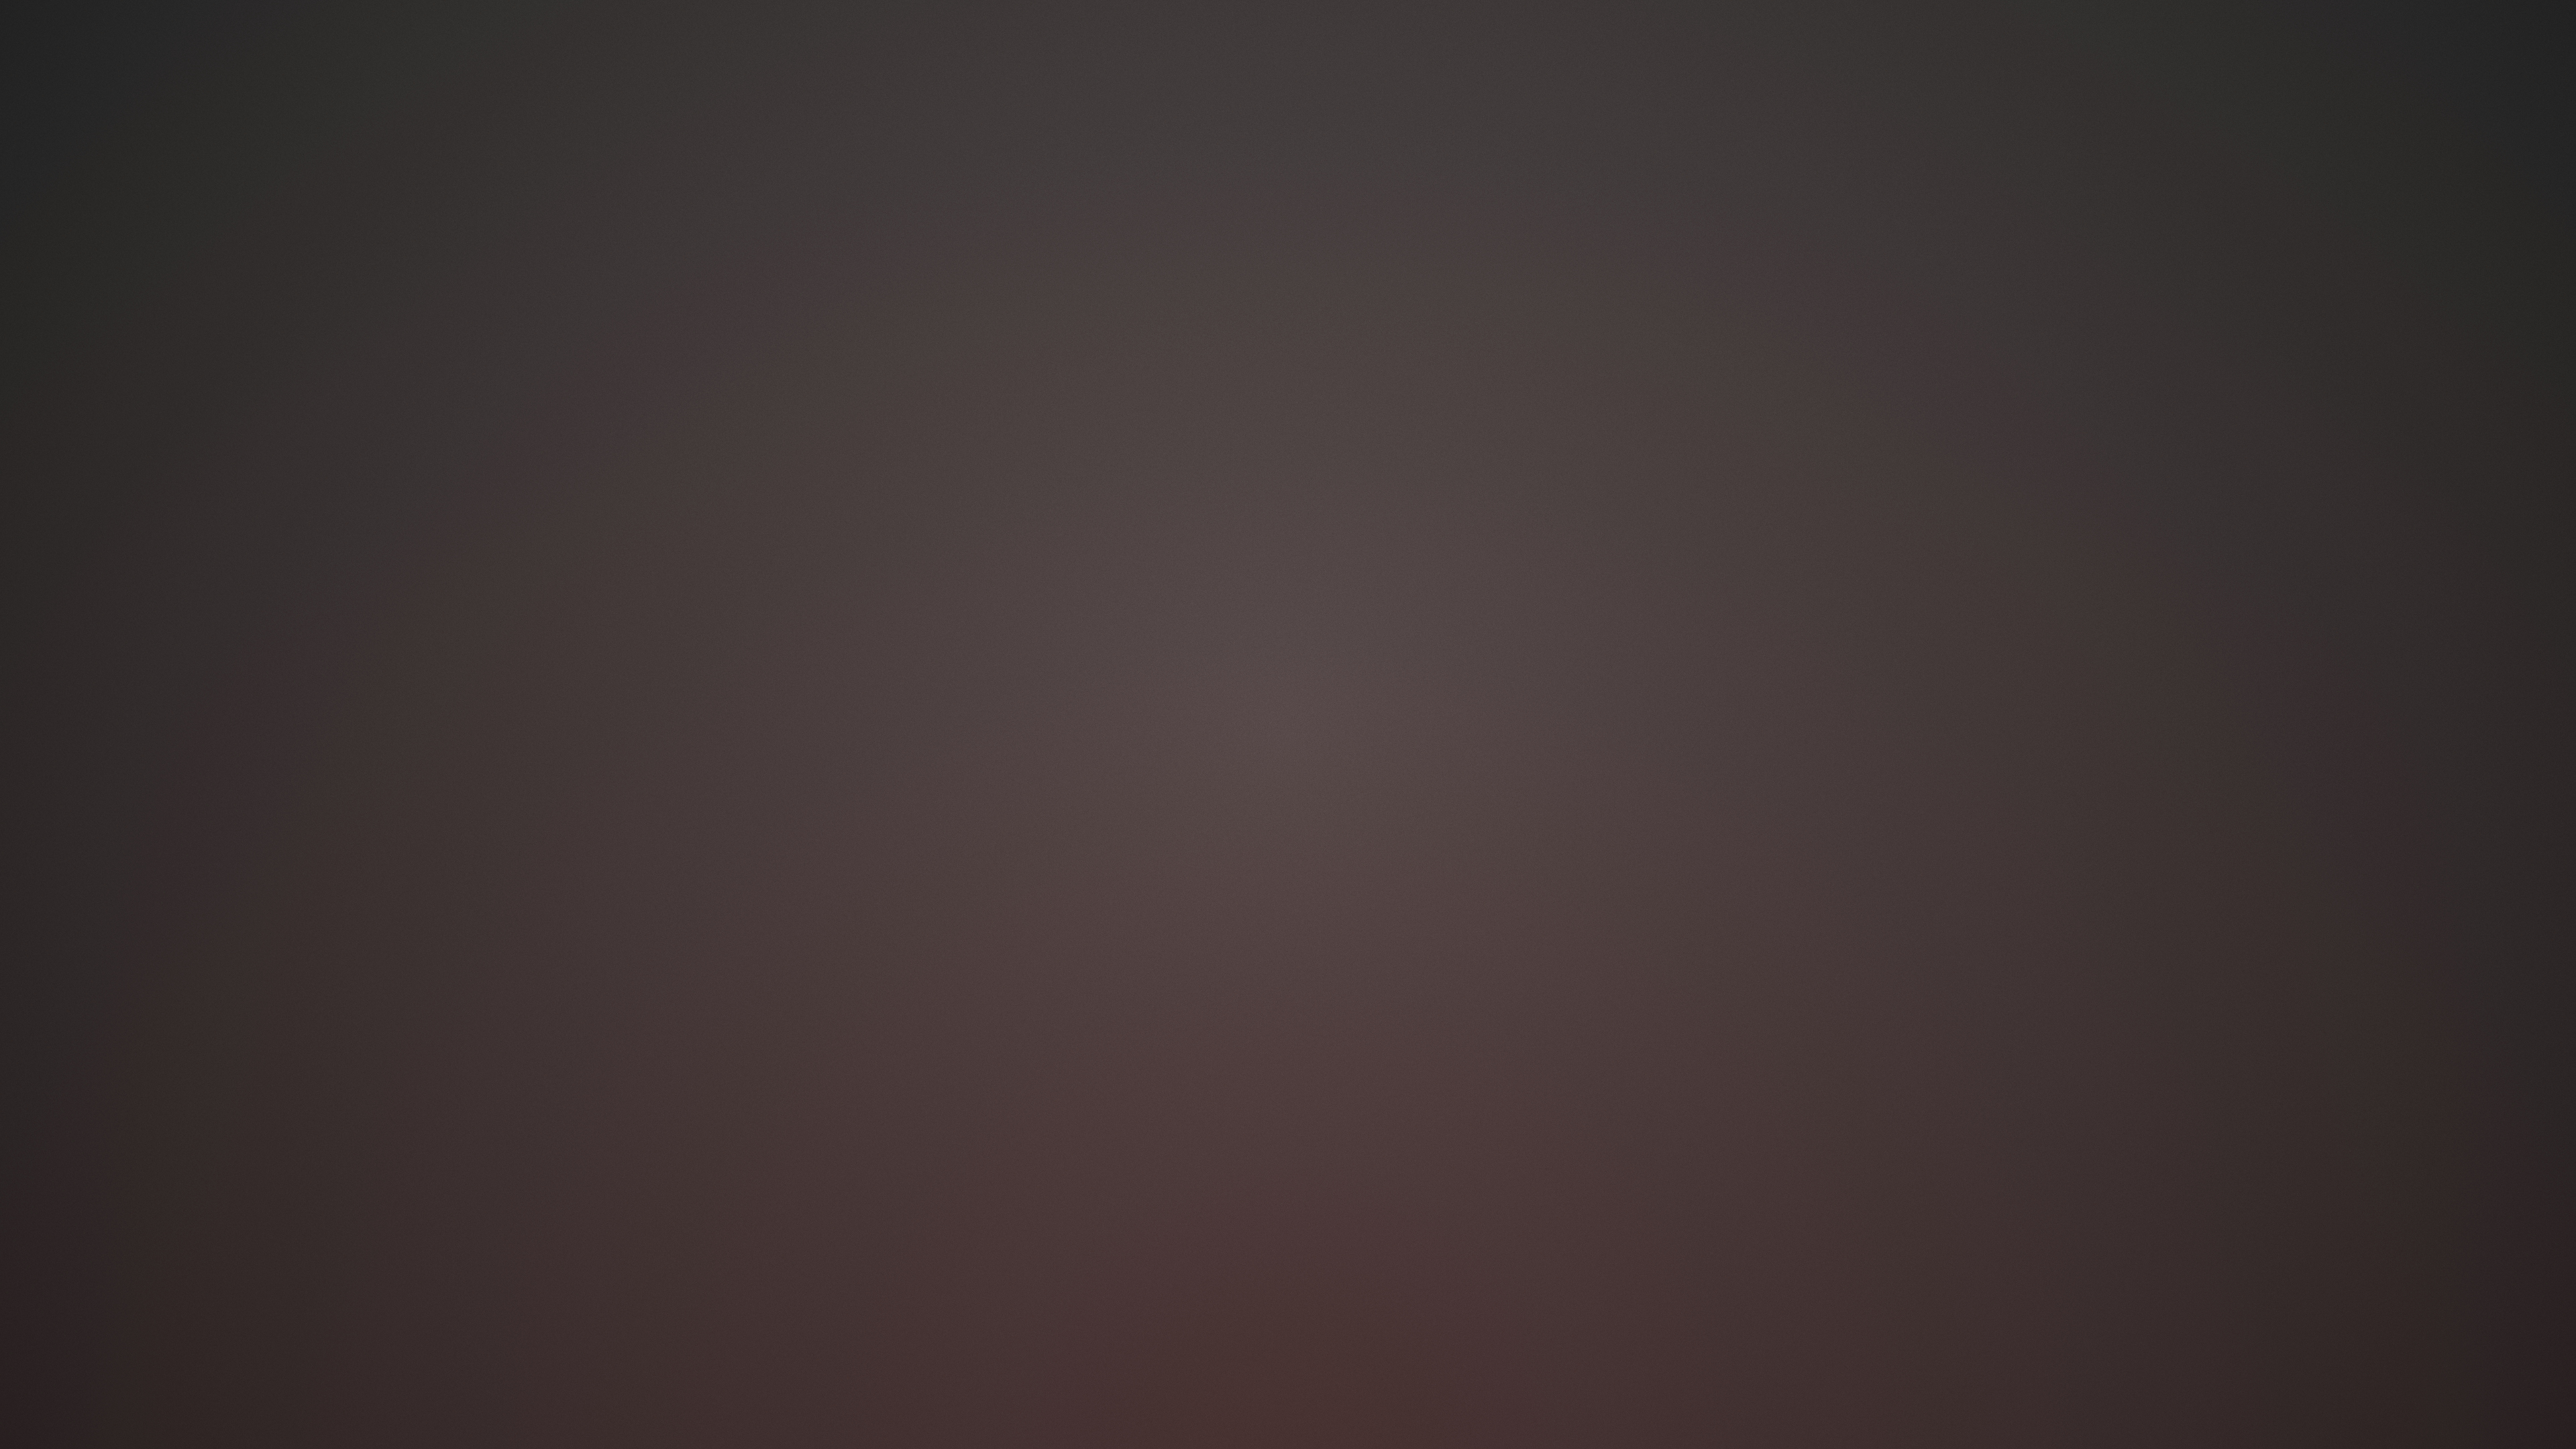 Photo collection wallpaper 4k abstract brown - Photo wallpaper ...